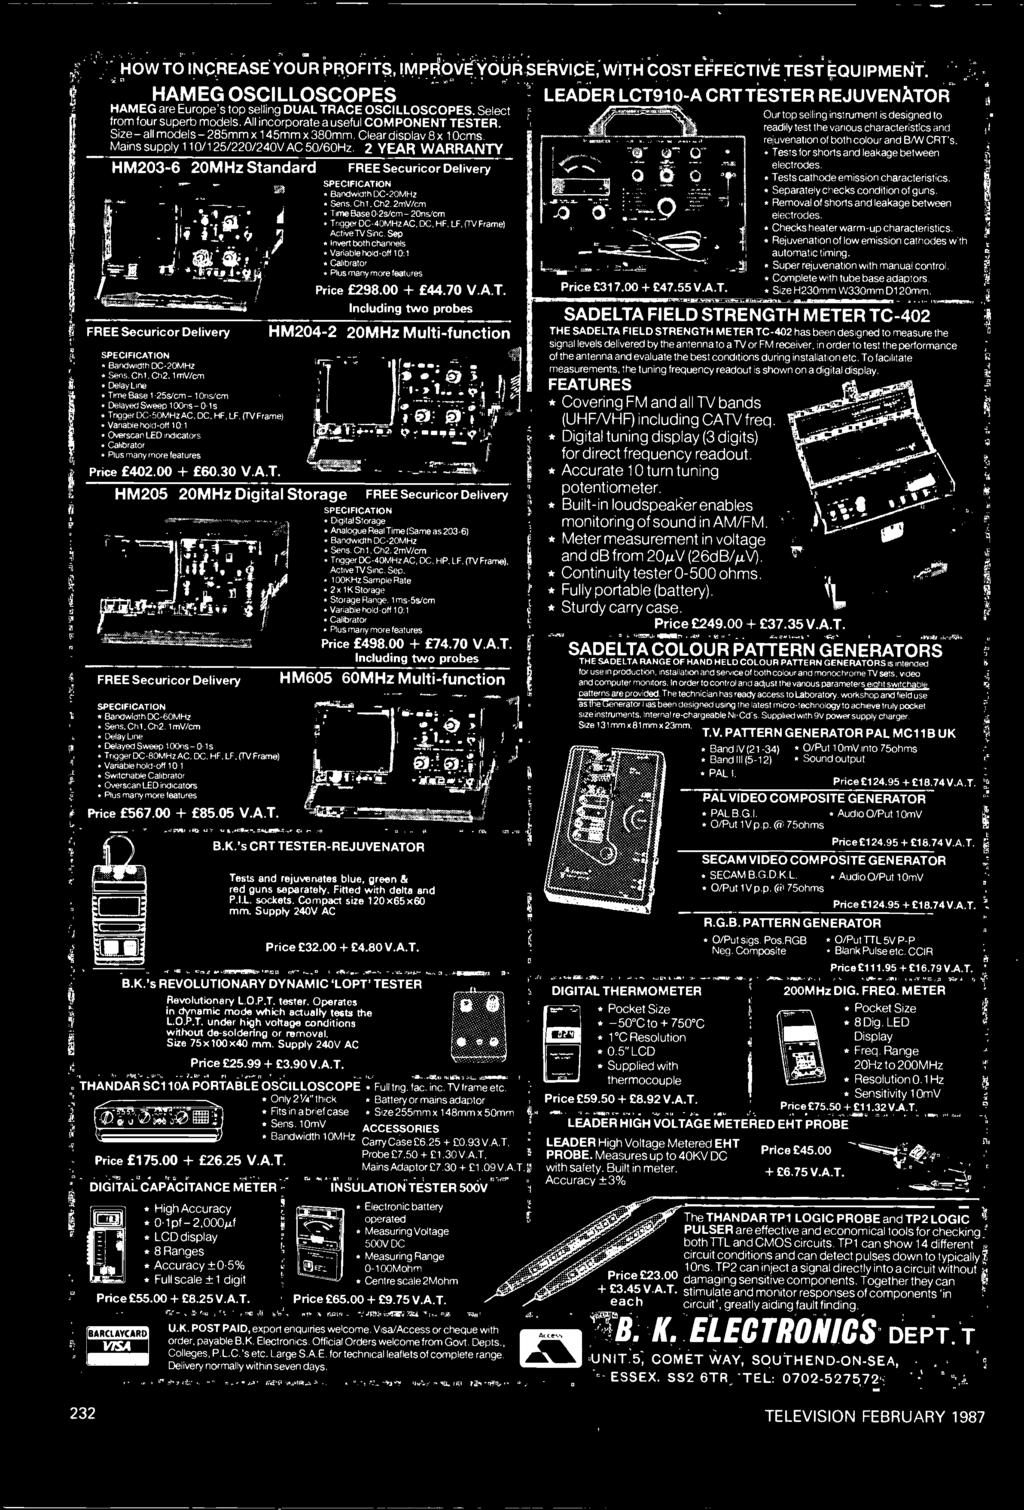 Advertising 1970-79 Collection Here 1974 Tektronix Telequipment D61 Oscilloscope Tv Repair Service Vtg Print Ad Strong Packing